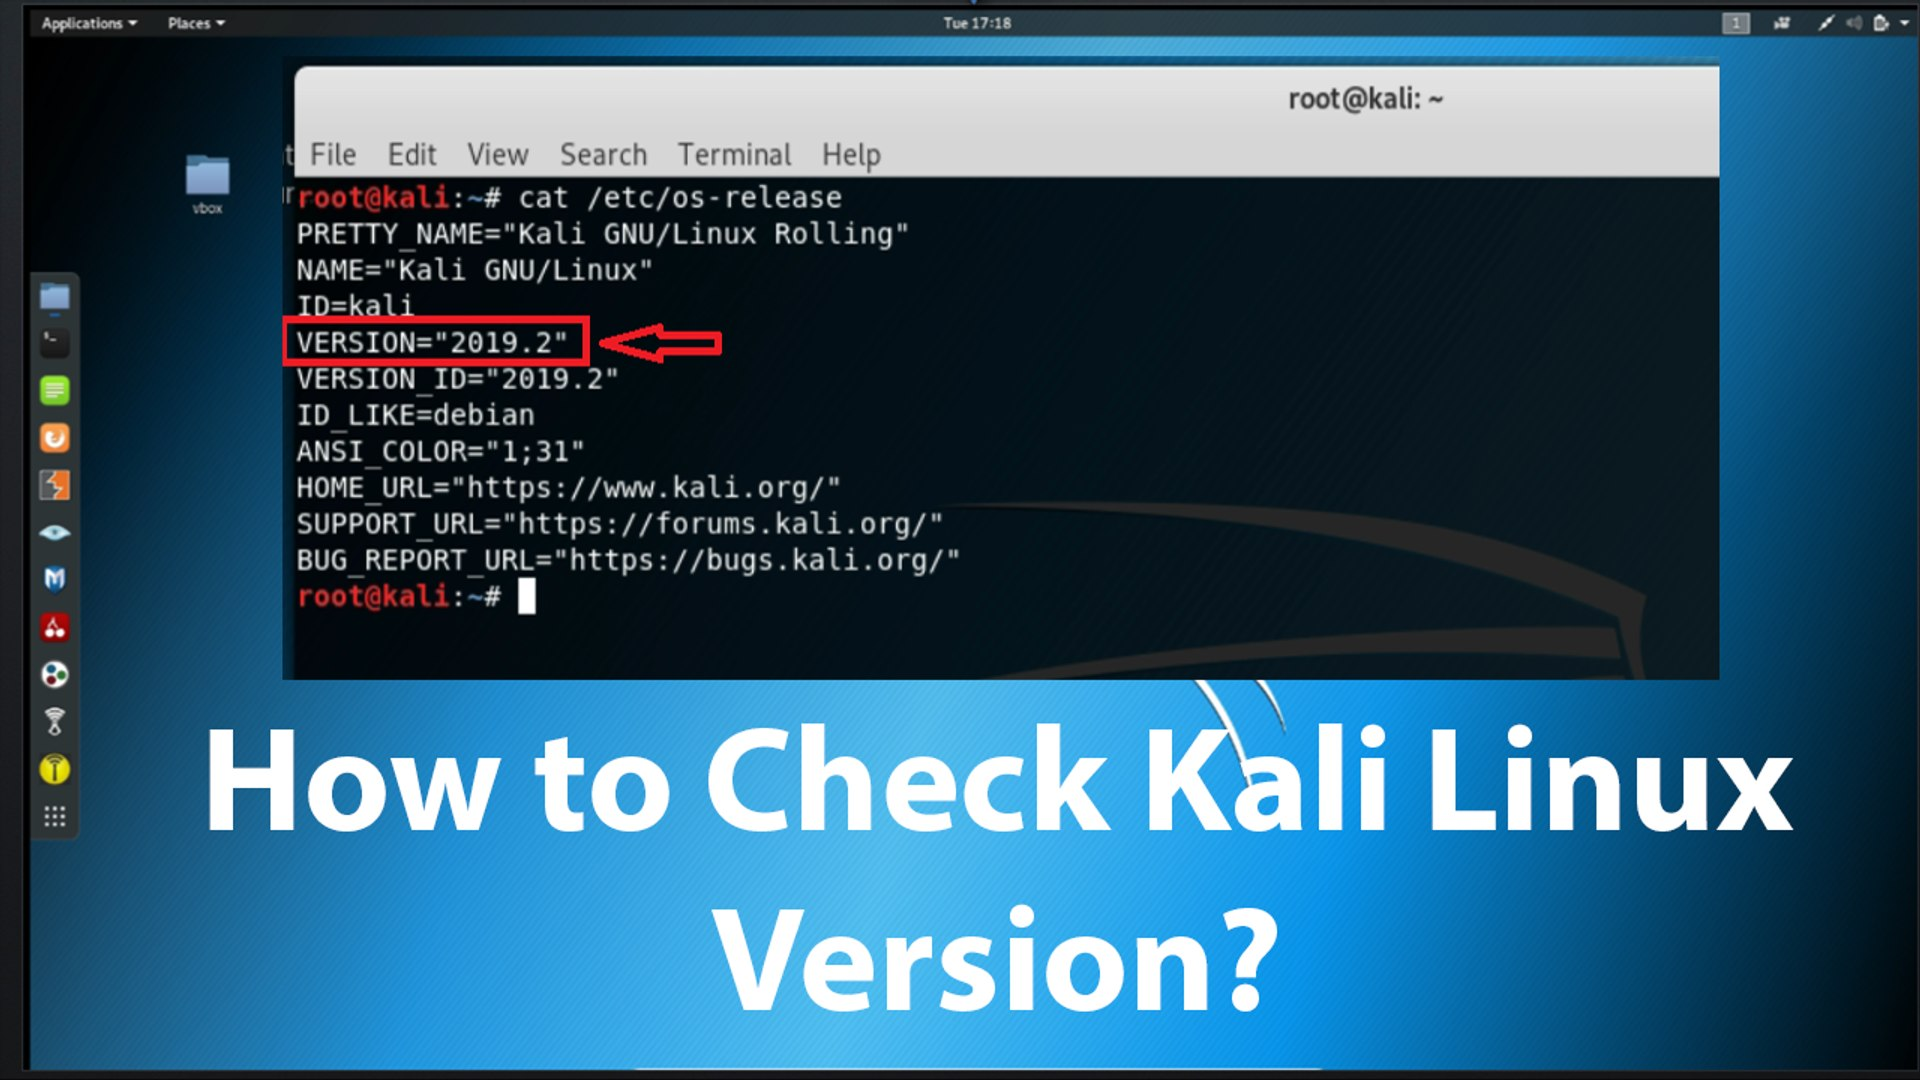 How to Check Kali Linux Version?